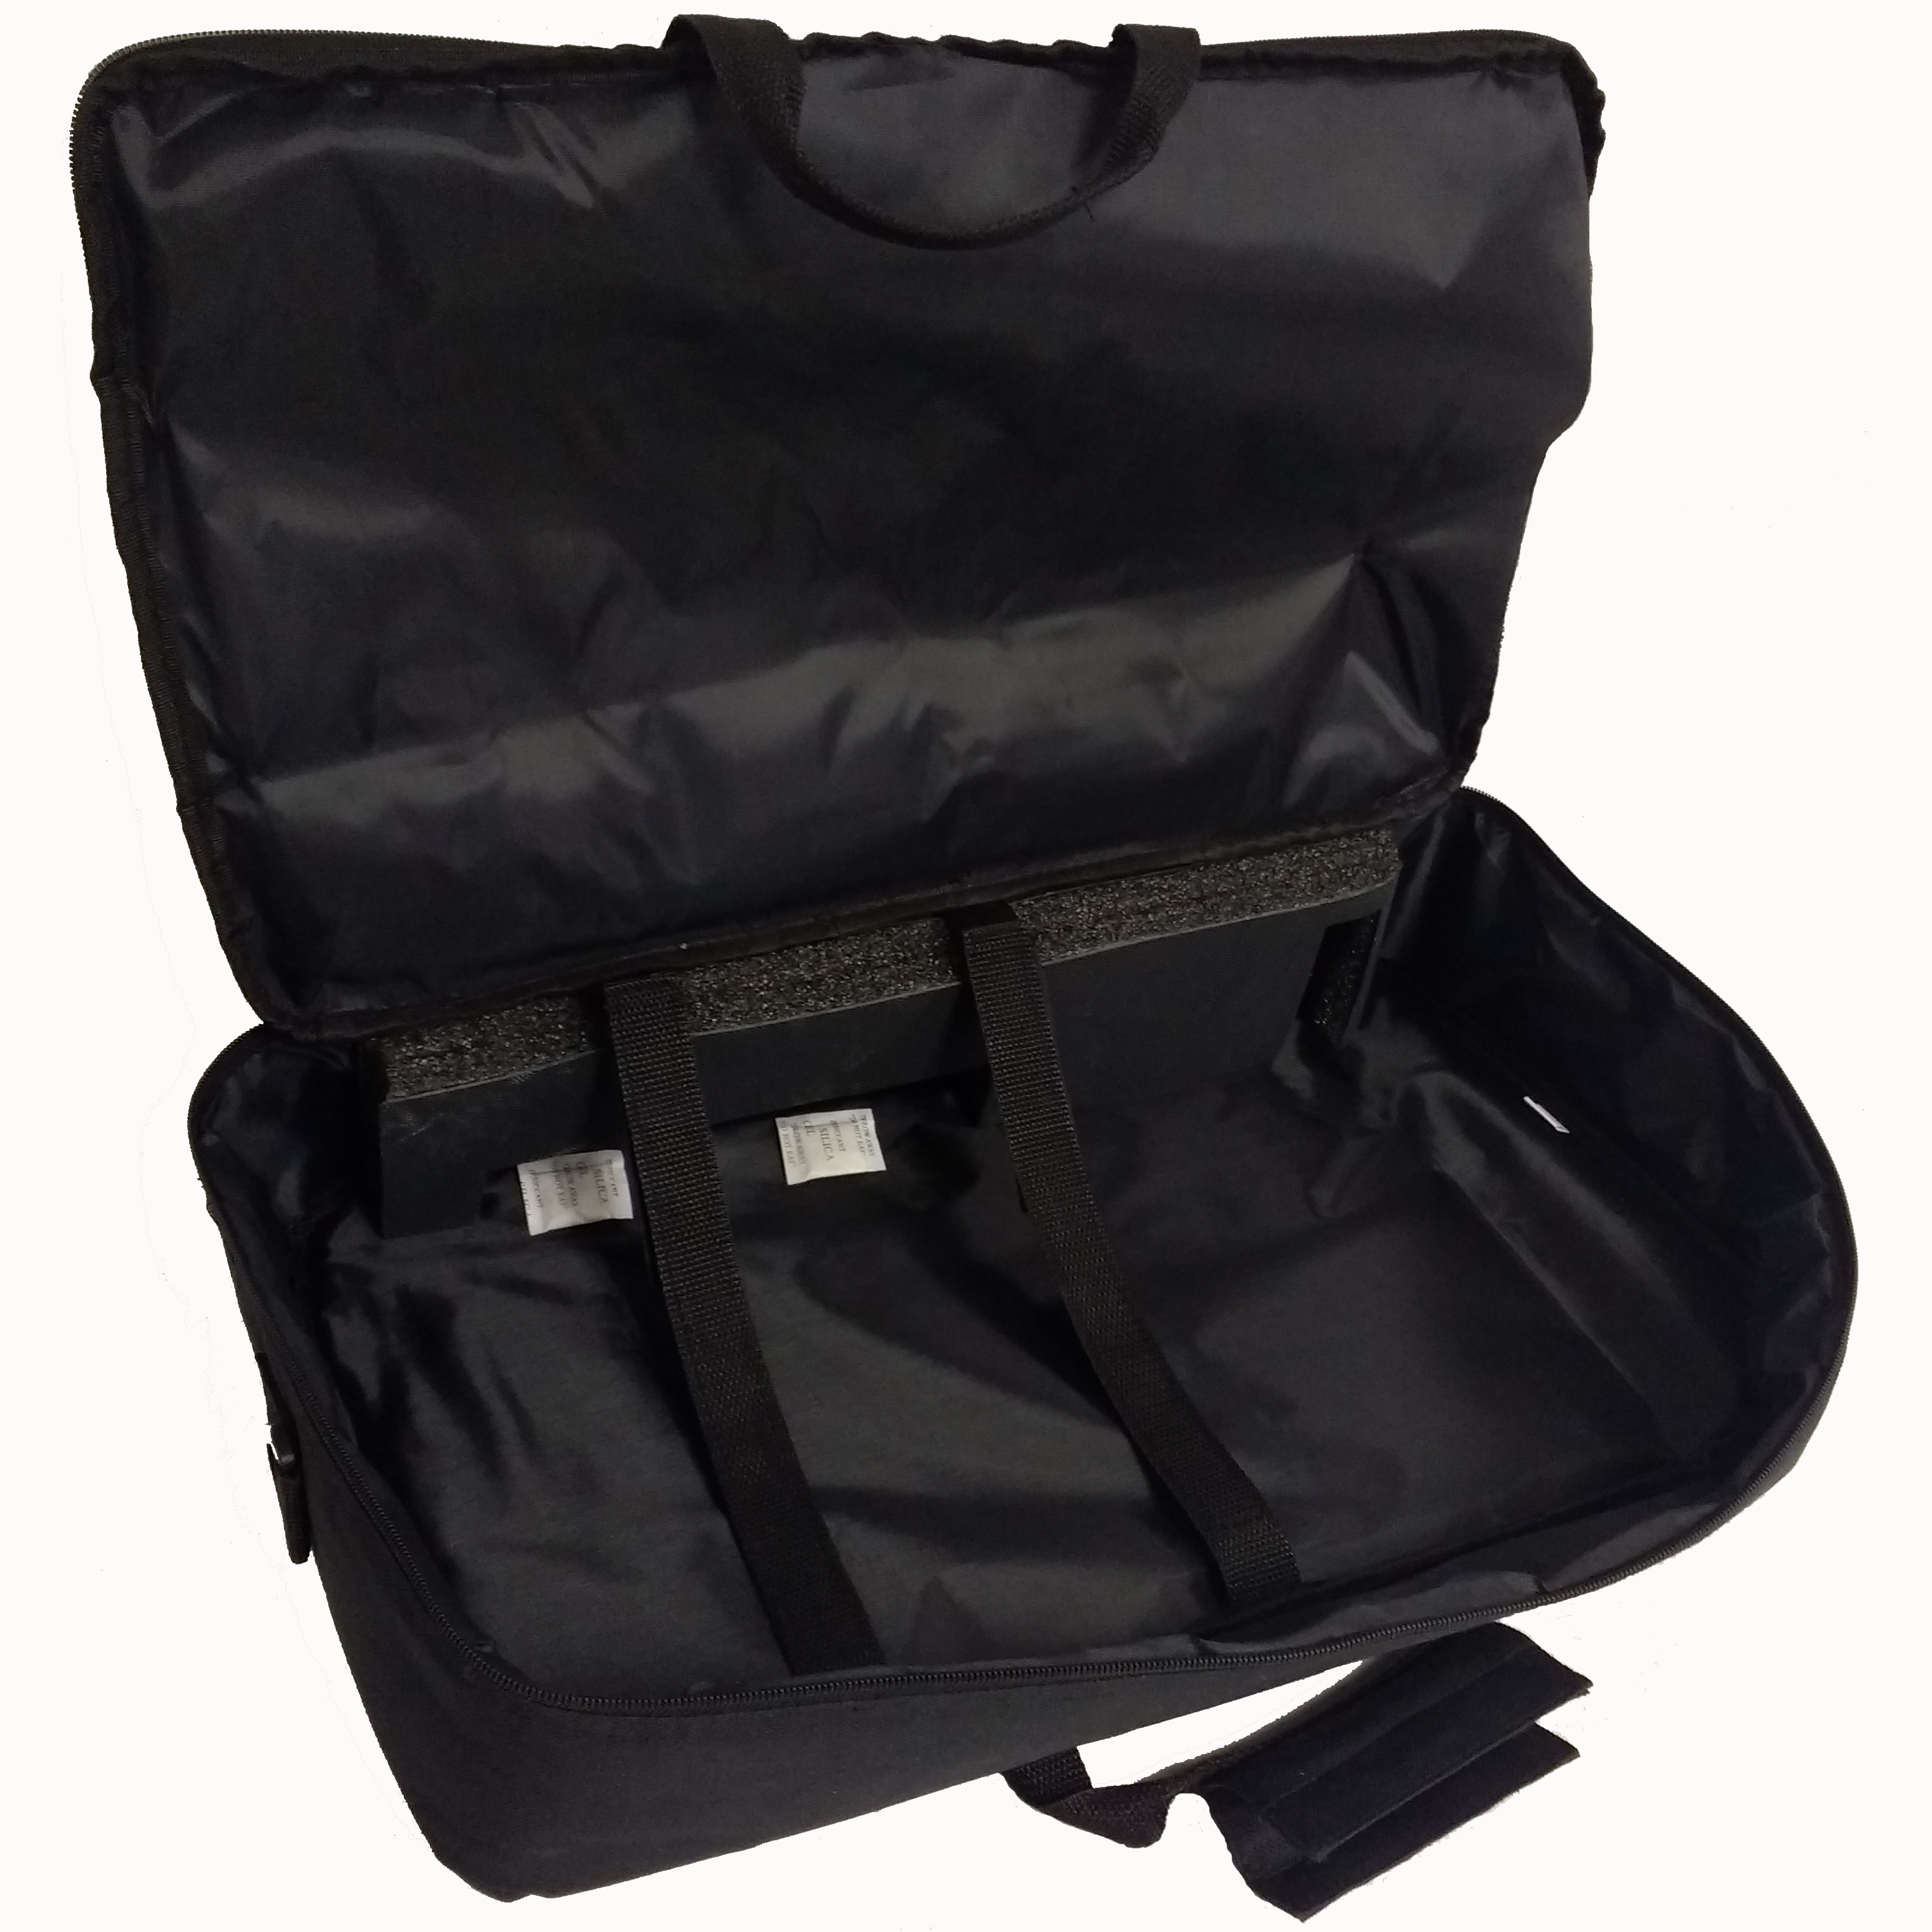 (EN-1817) Daktronics Soft Carrying Case for All Sport 3000, 4000, and 5000 Controllers 1